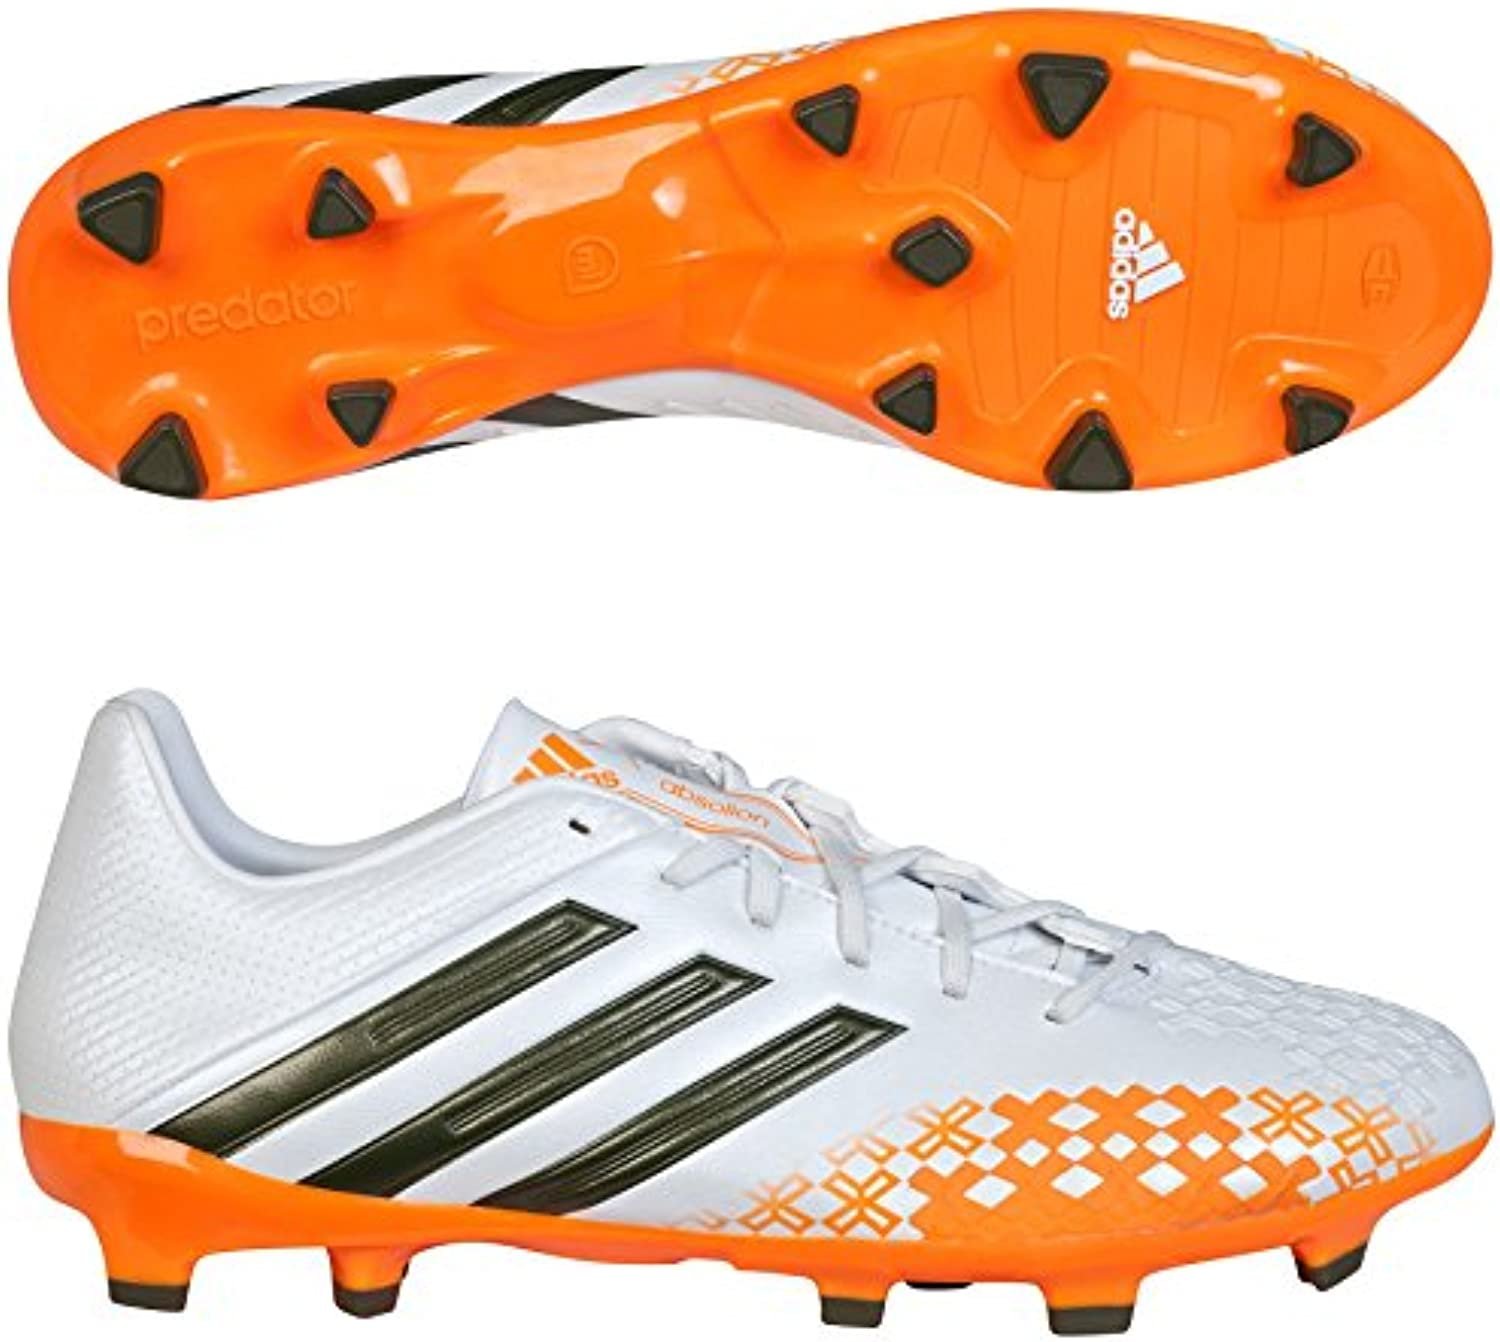 adidas Absolion LZ TRX FG White f32555, color LGTSCA/RUNWH, tamaño 41 1/3